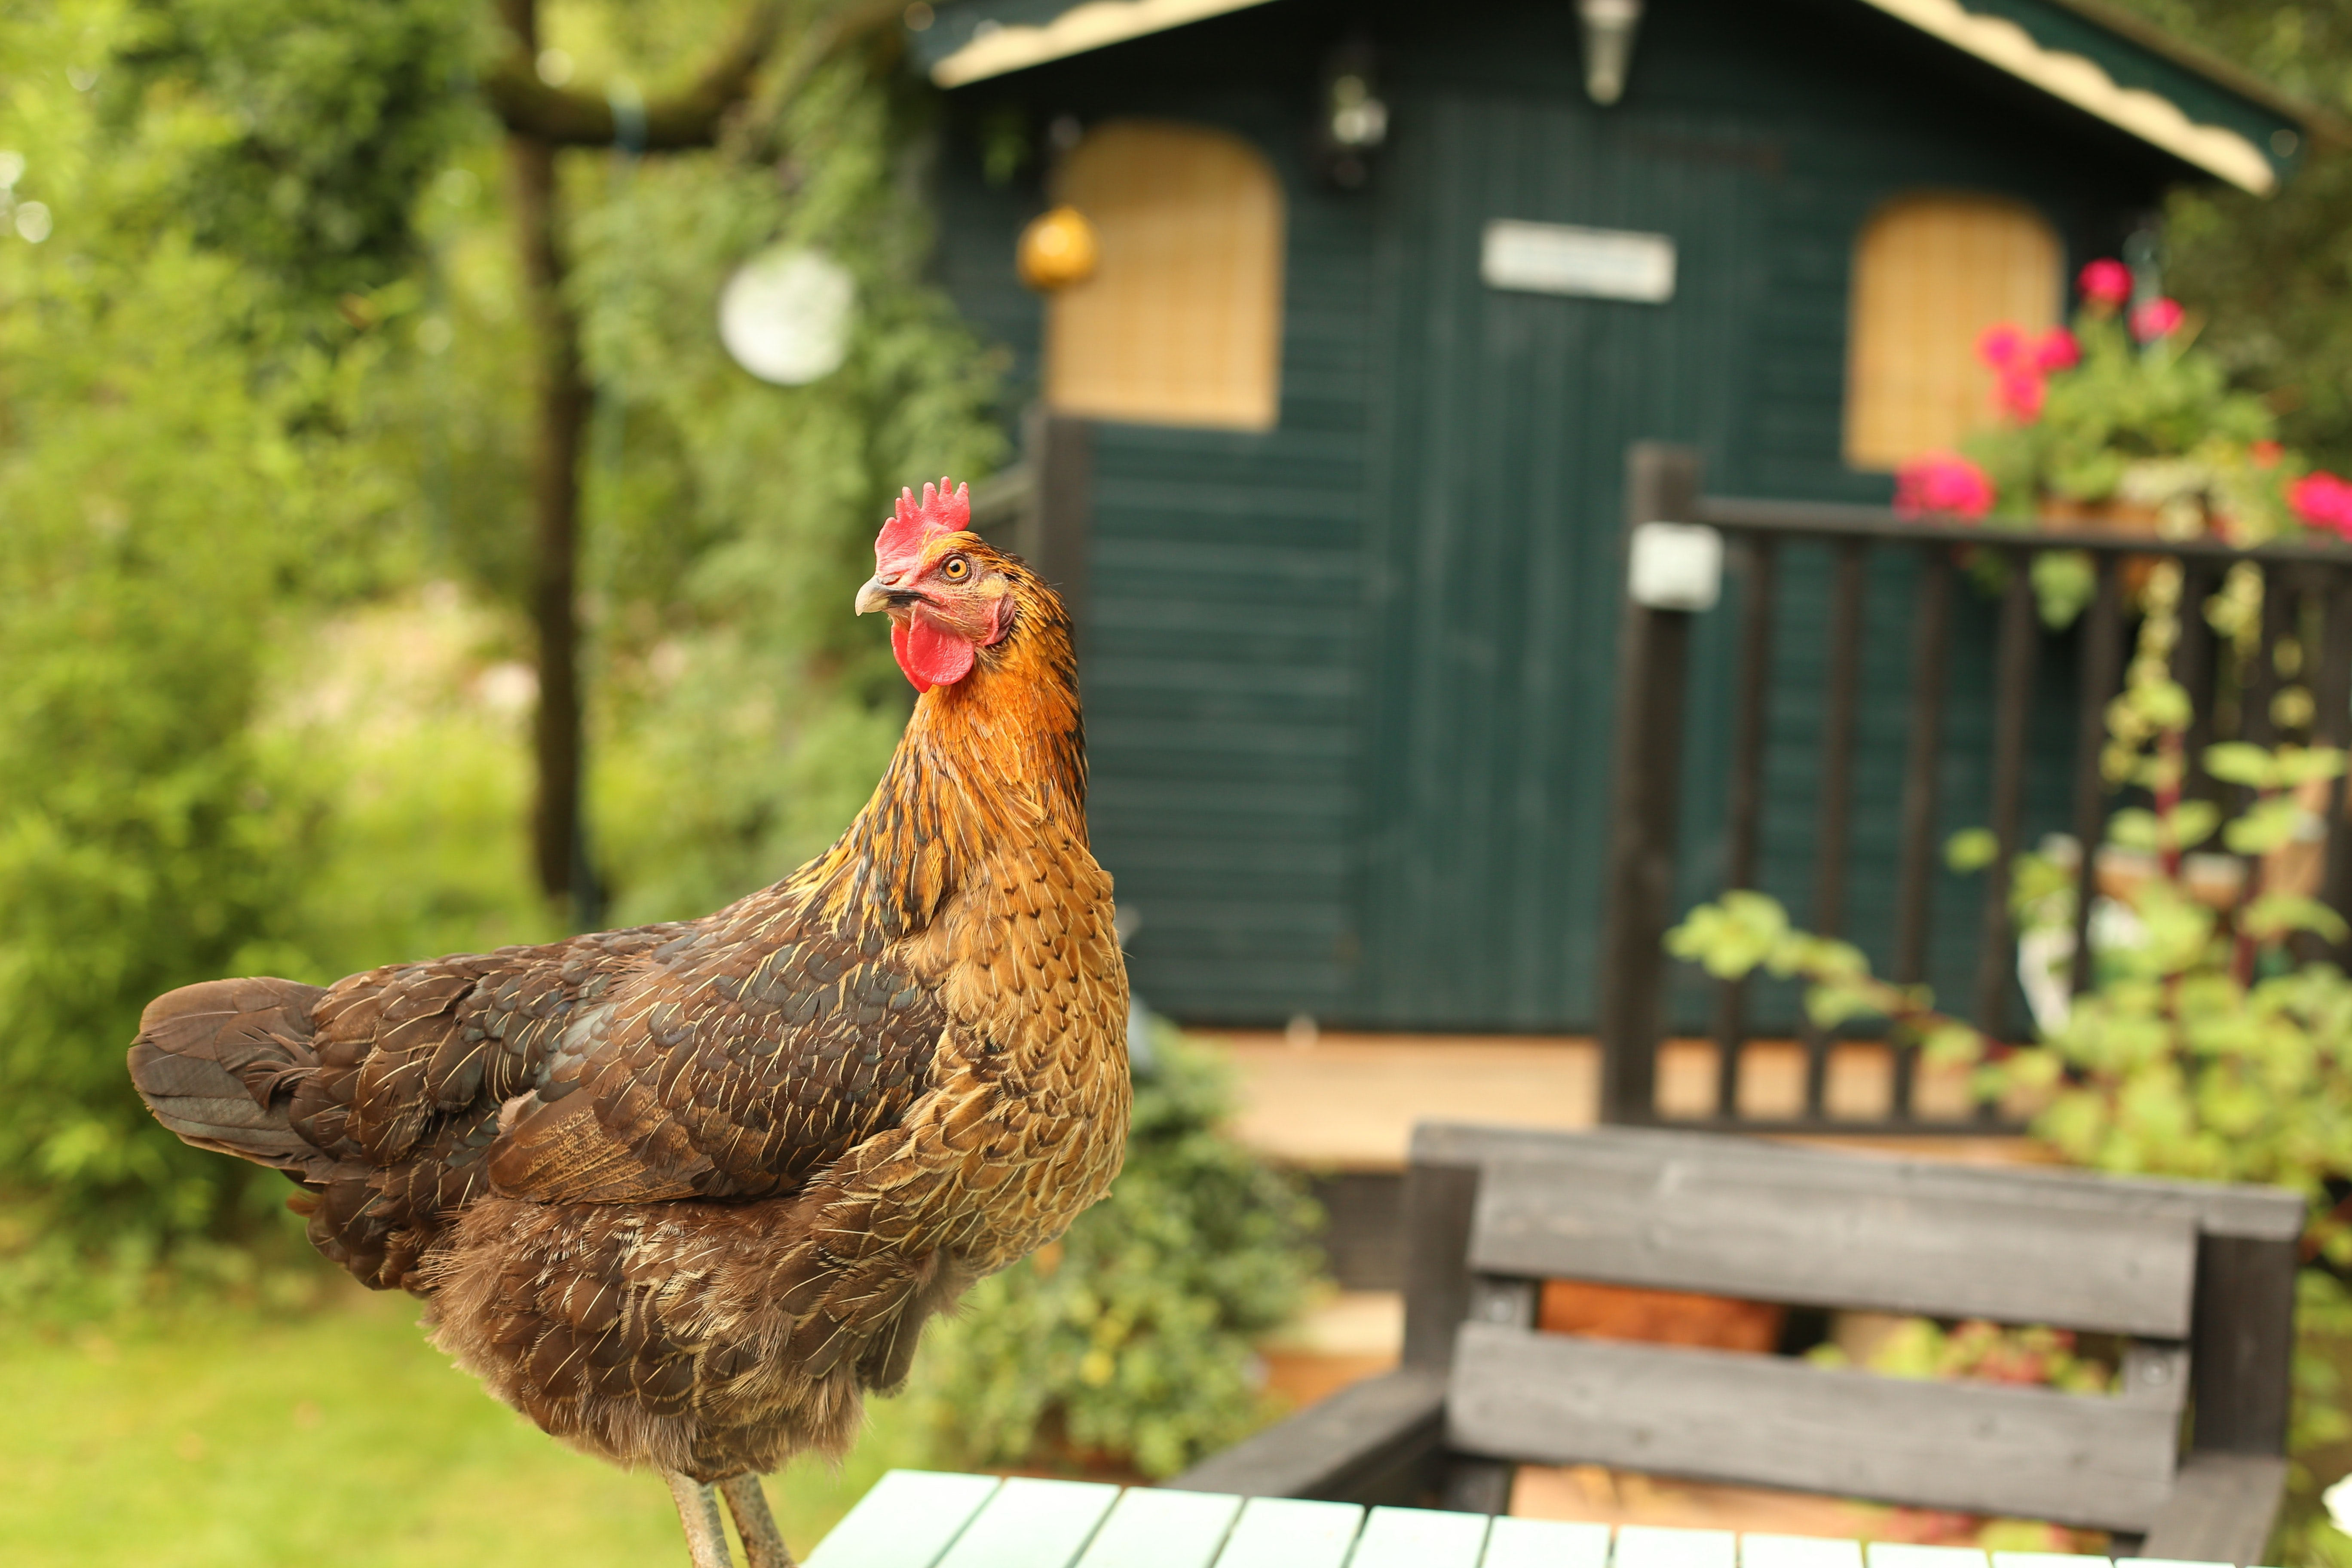 A chicken standing on a table in front of a green shed or cabin in Crymych